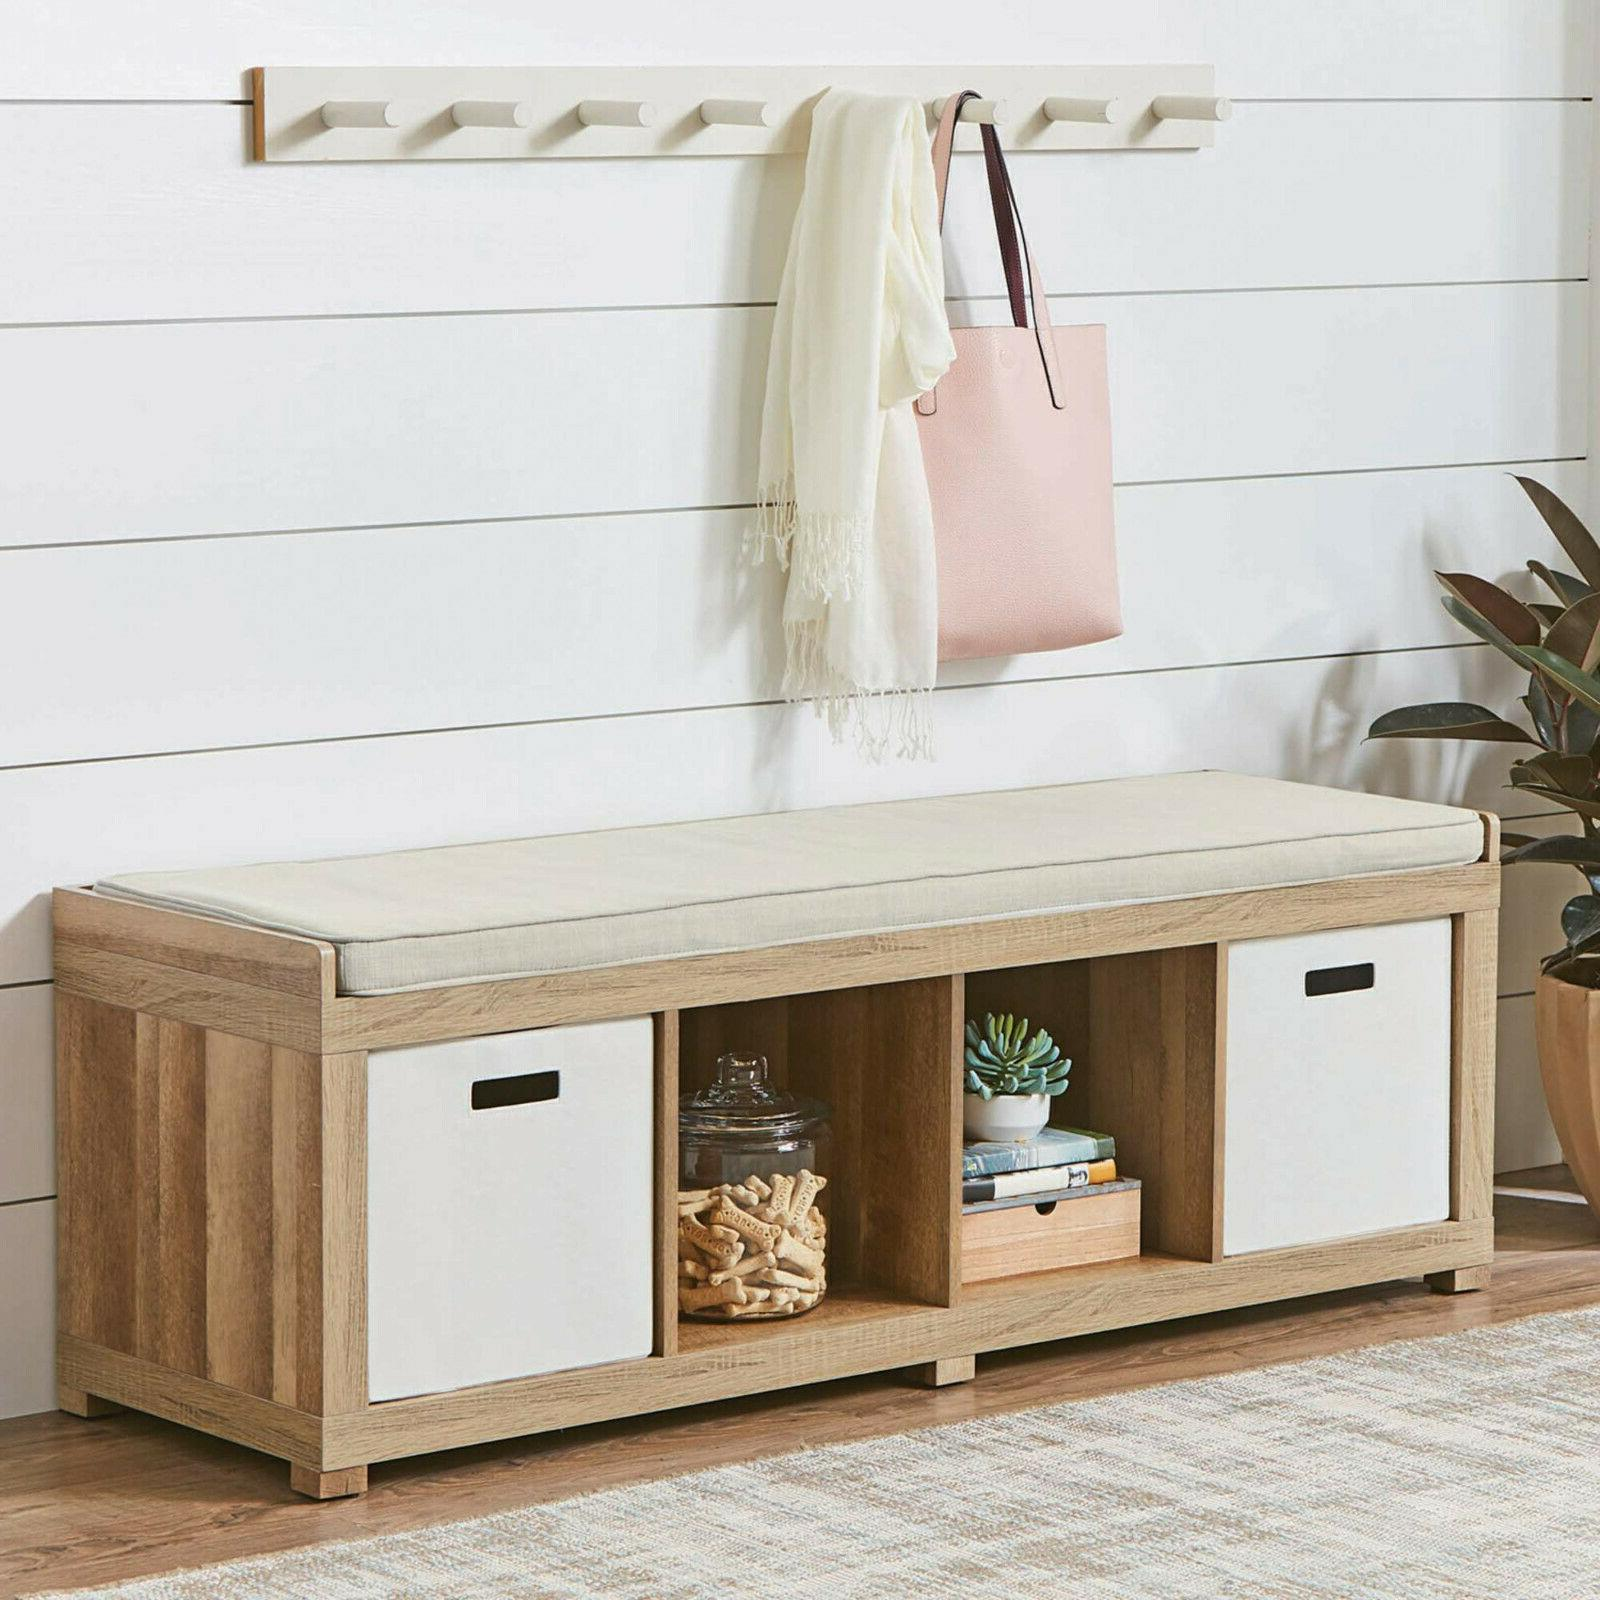 better homes and gardens 4 cube organizer